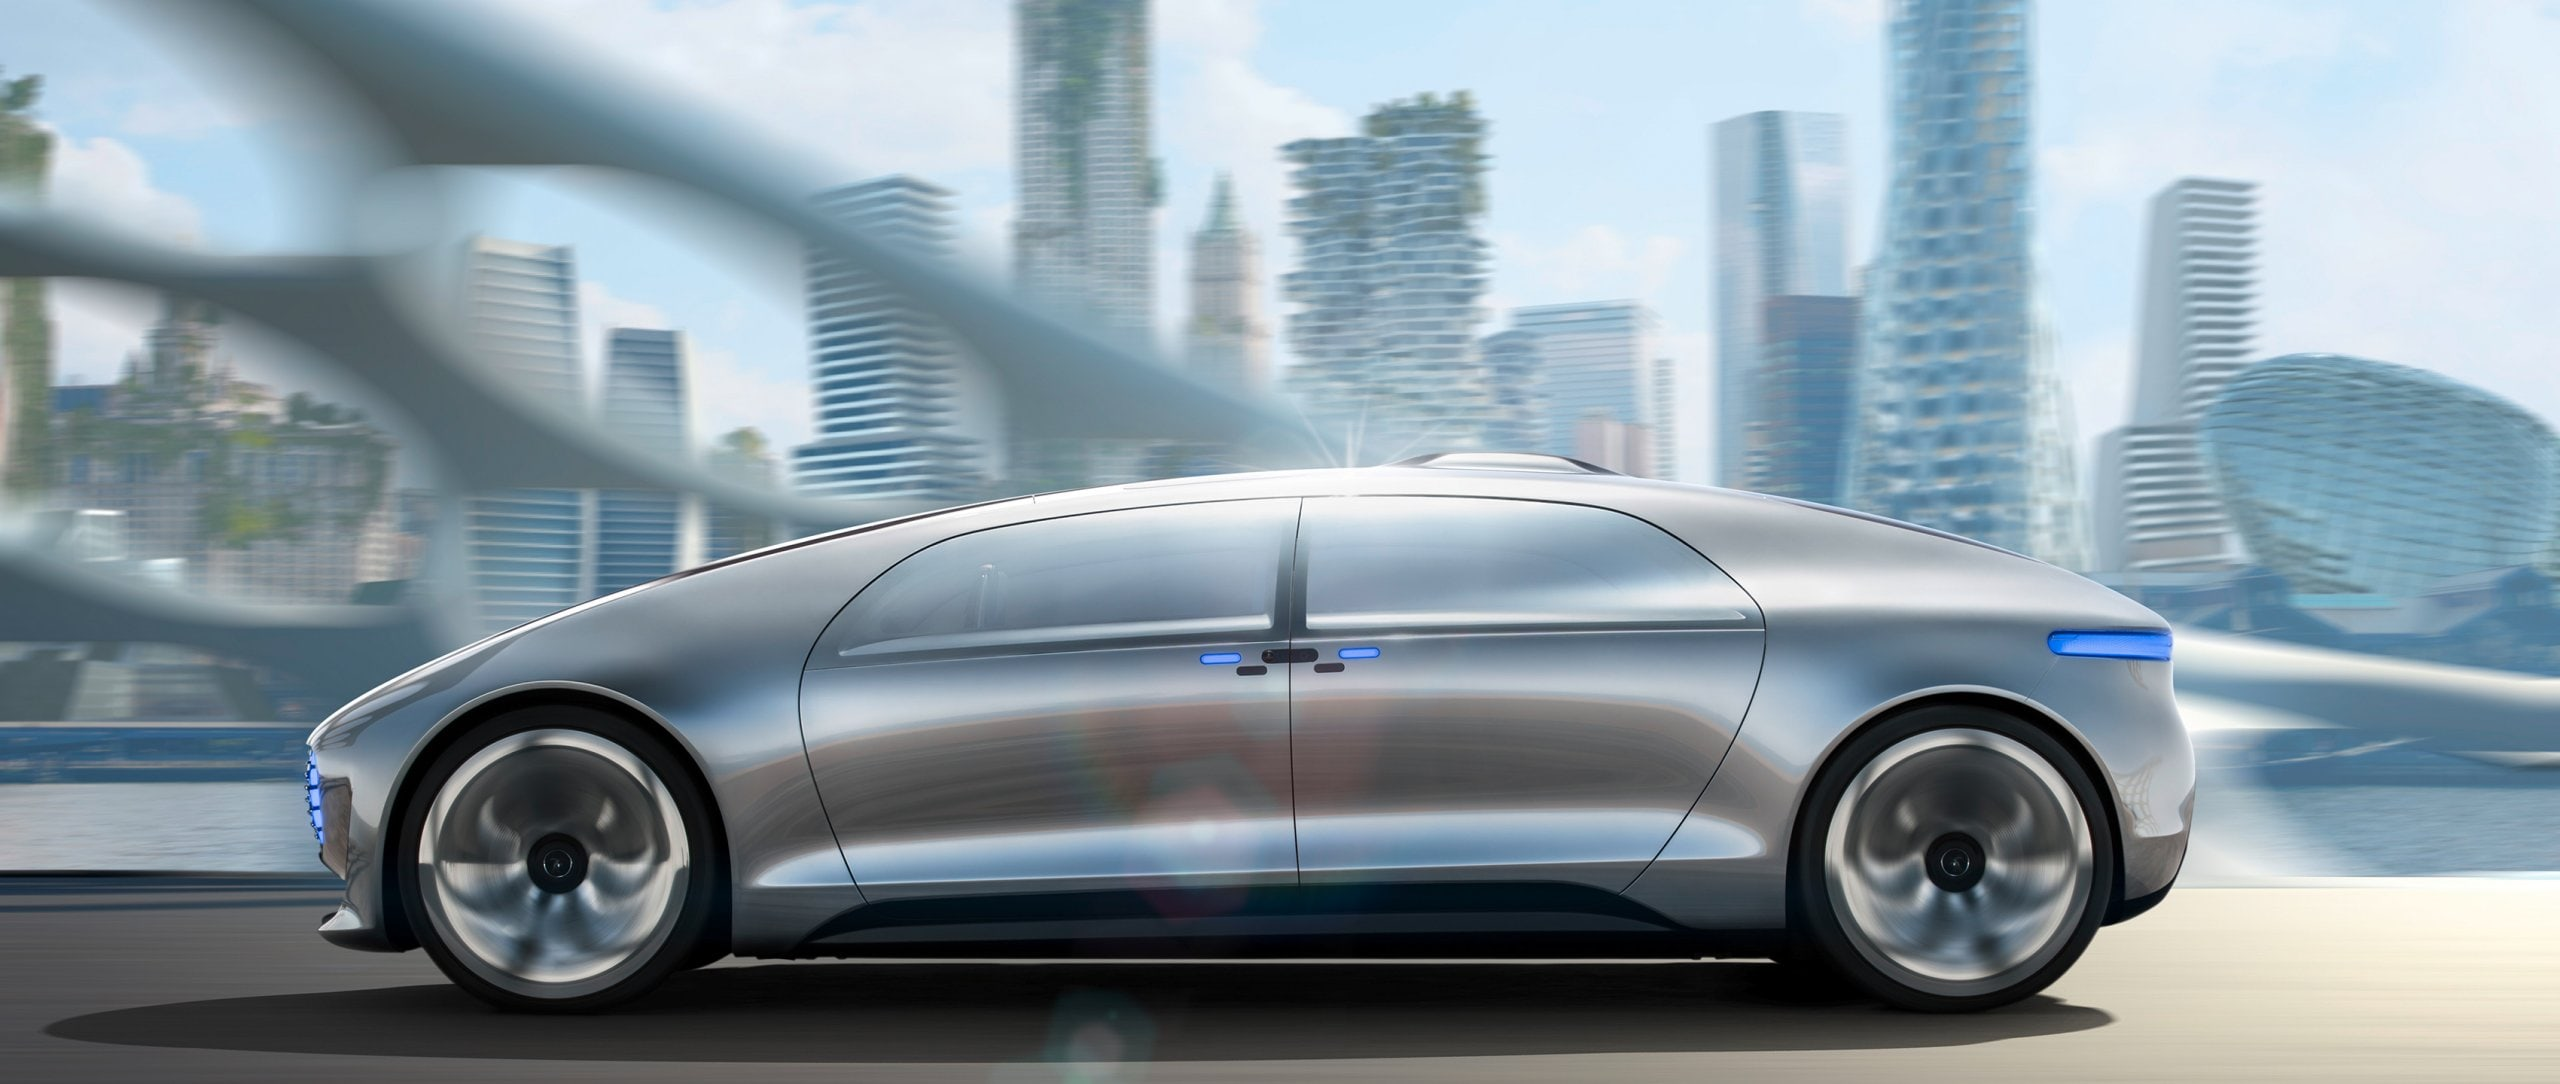 The F 015 Luxury in Motion in the city traffic of the future.